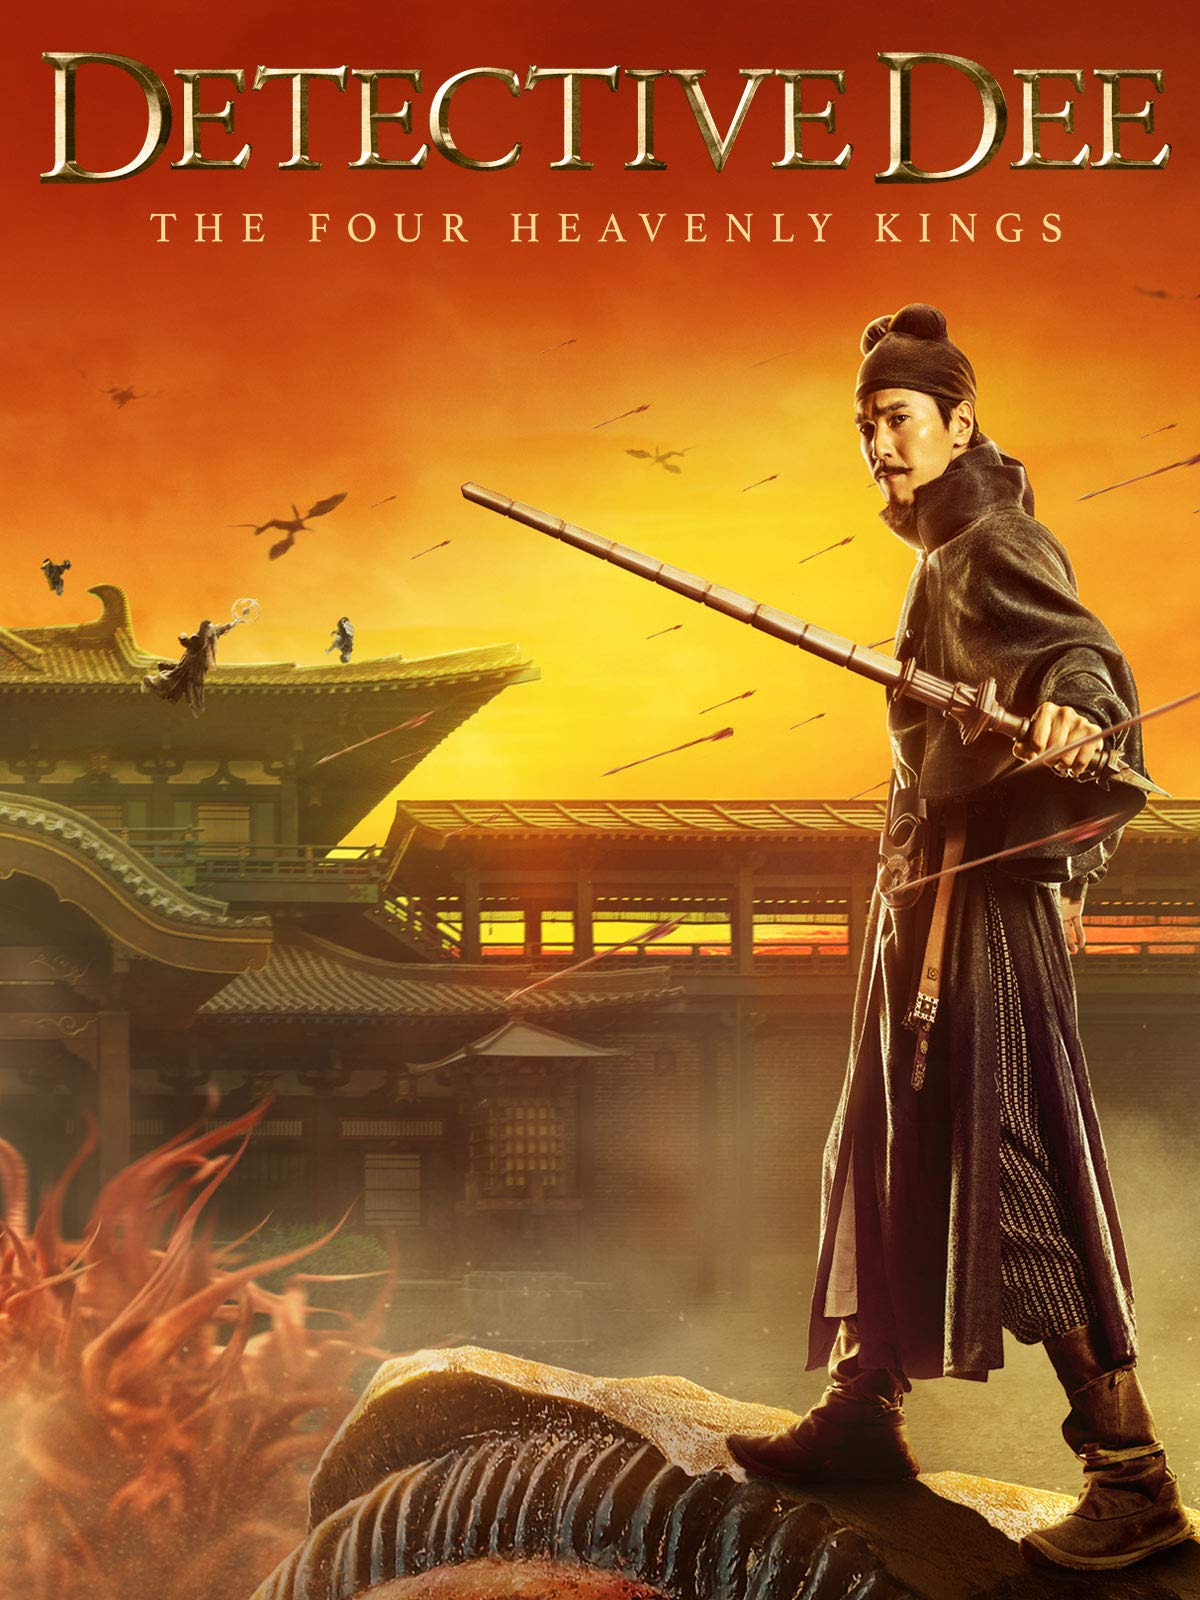 Amazon com: Watch Detective Dee: The Four Heavenly Kings | Prime Video